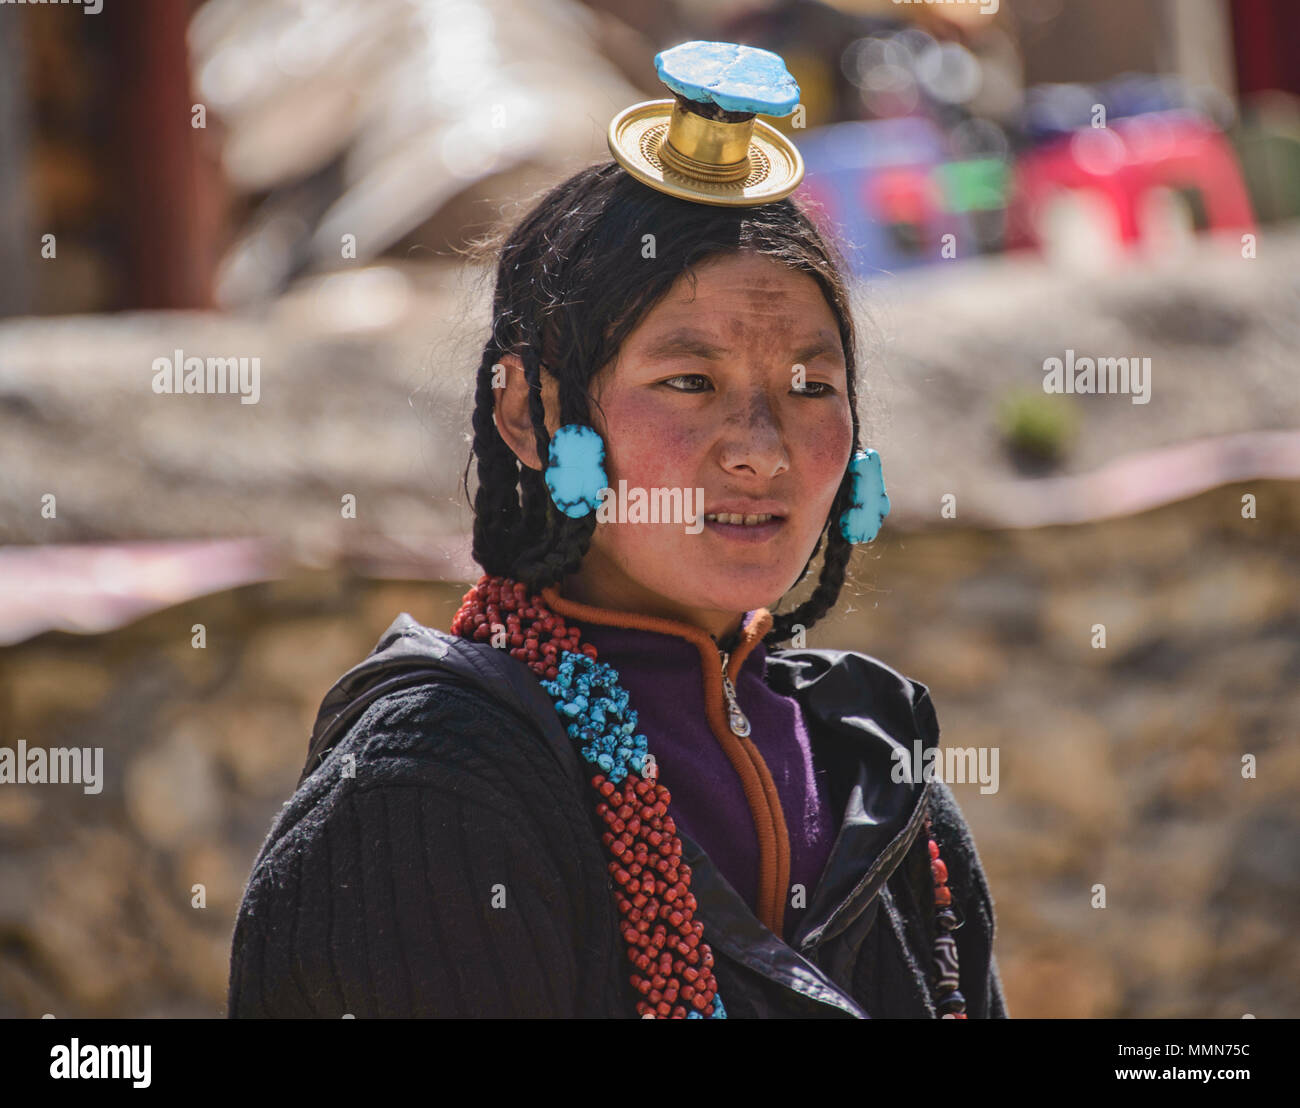 Portrait of a tibetan woman at the Bakong Scripture Printing Press Monastery in Dege, Sichuan, China - Stock Image